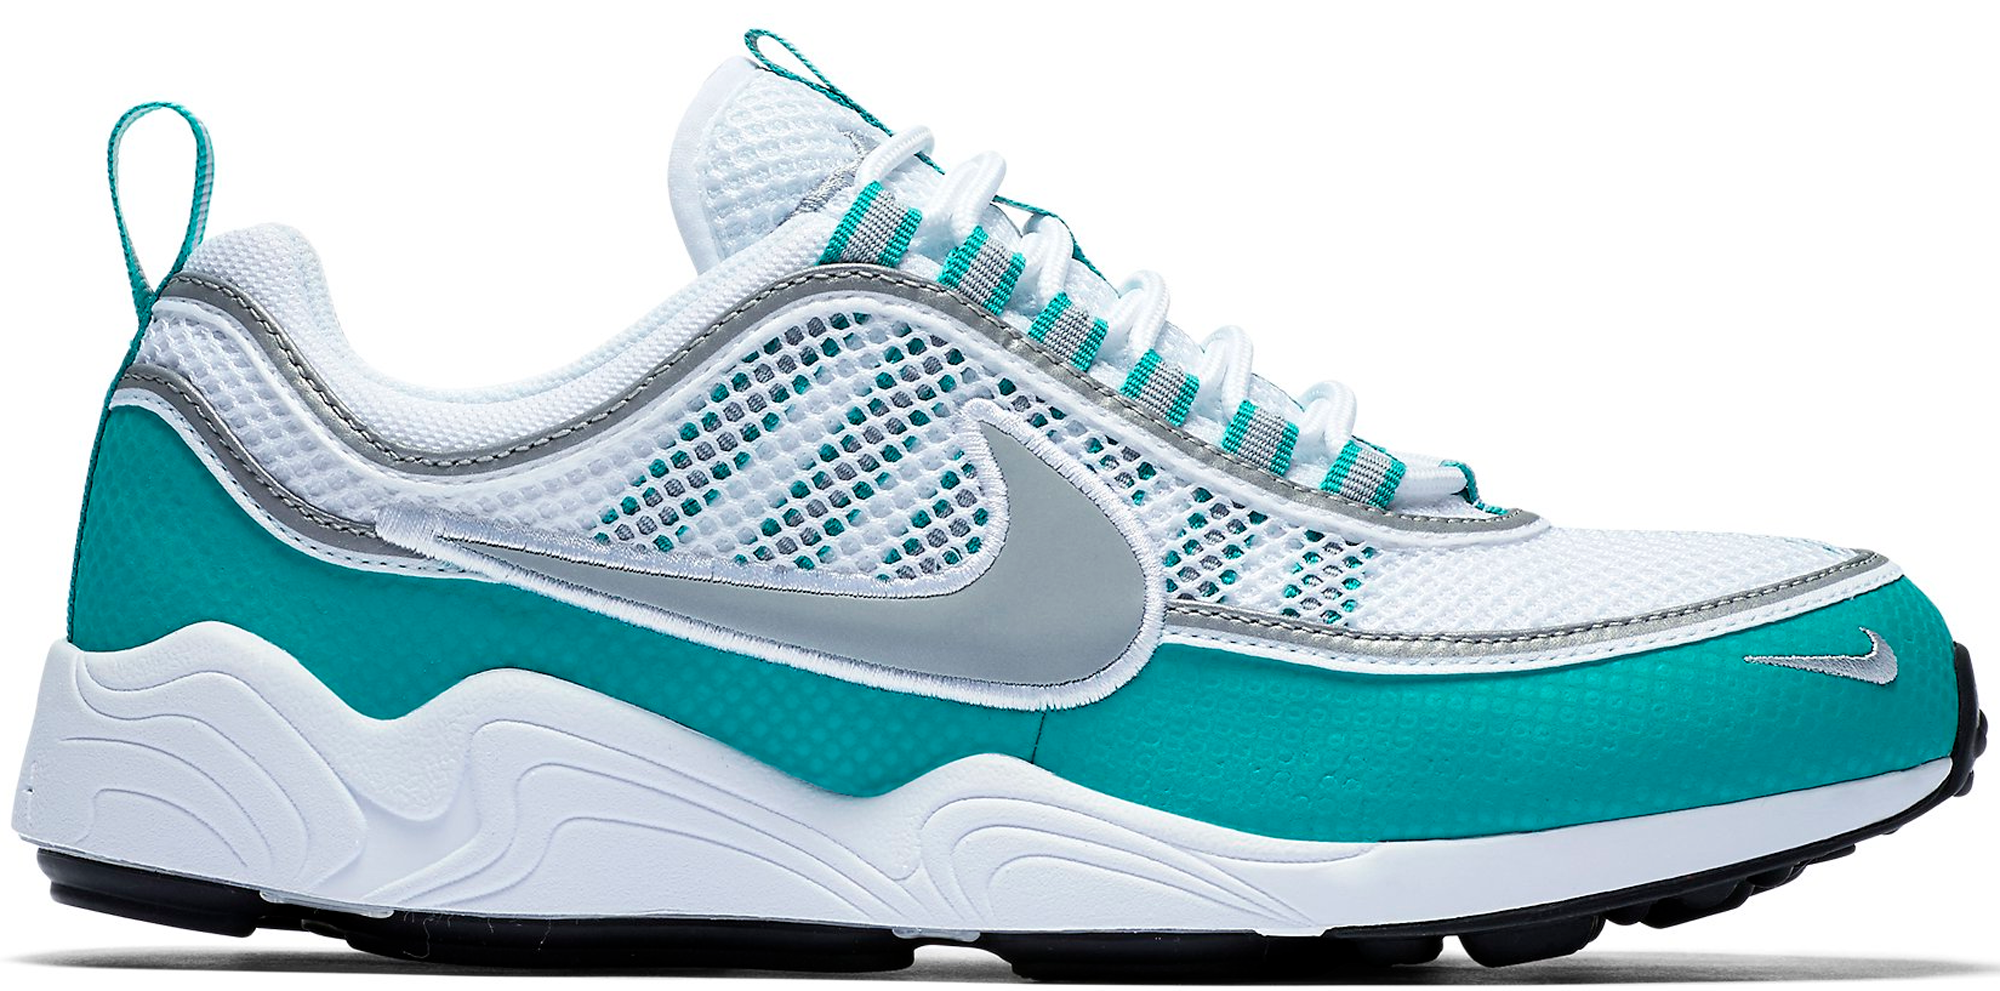 46764dade7de Nike Air Zoom Spiridon White Turbo Green - StockX News